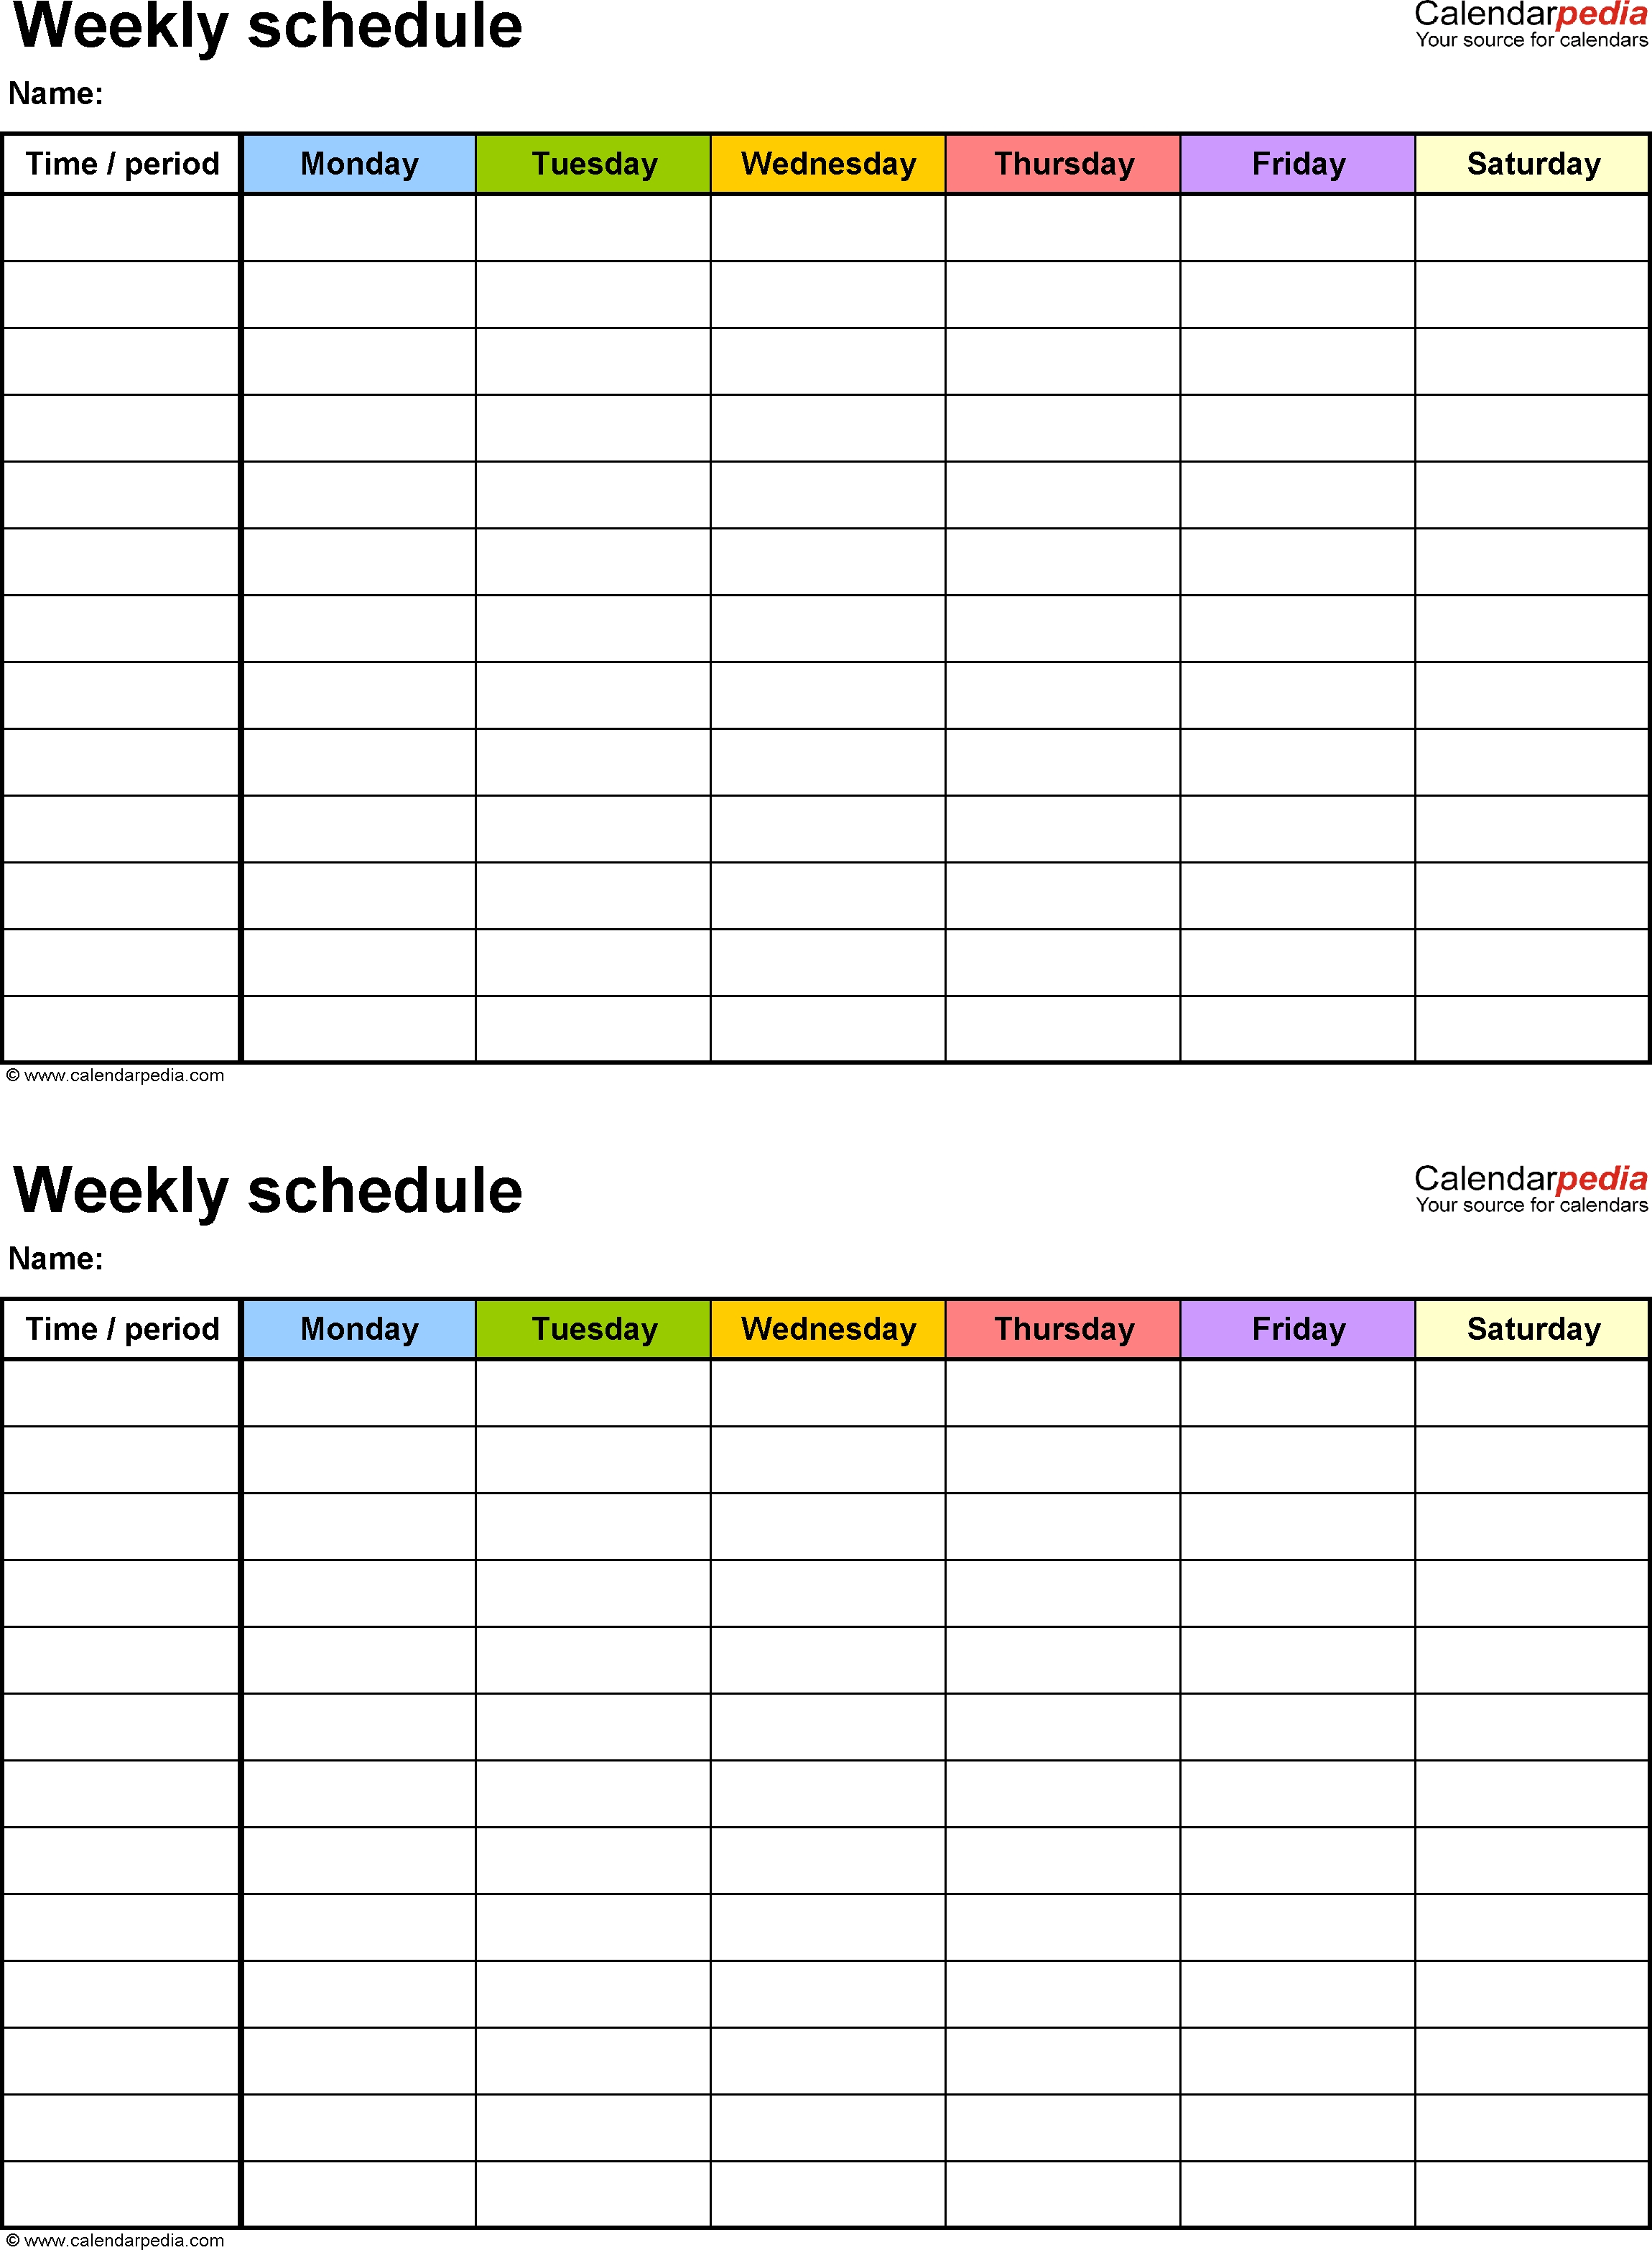 Free Weekly Schedule Templates For Excel - 18 Templates regarding Excel Calendar Template 6 Weeks